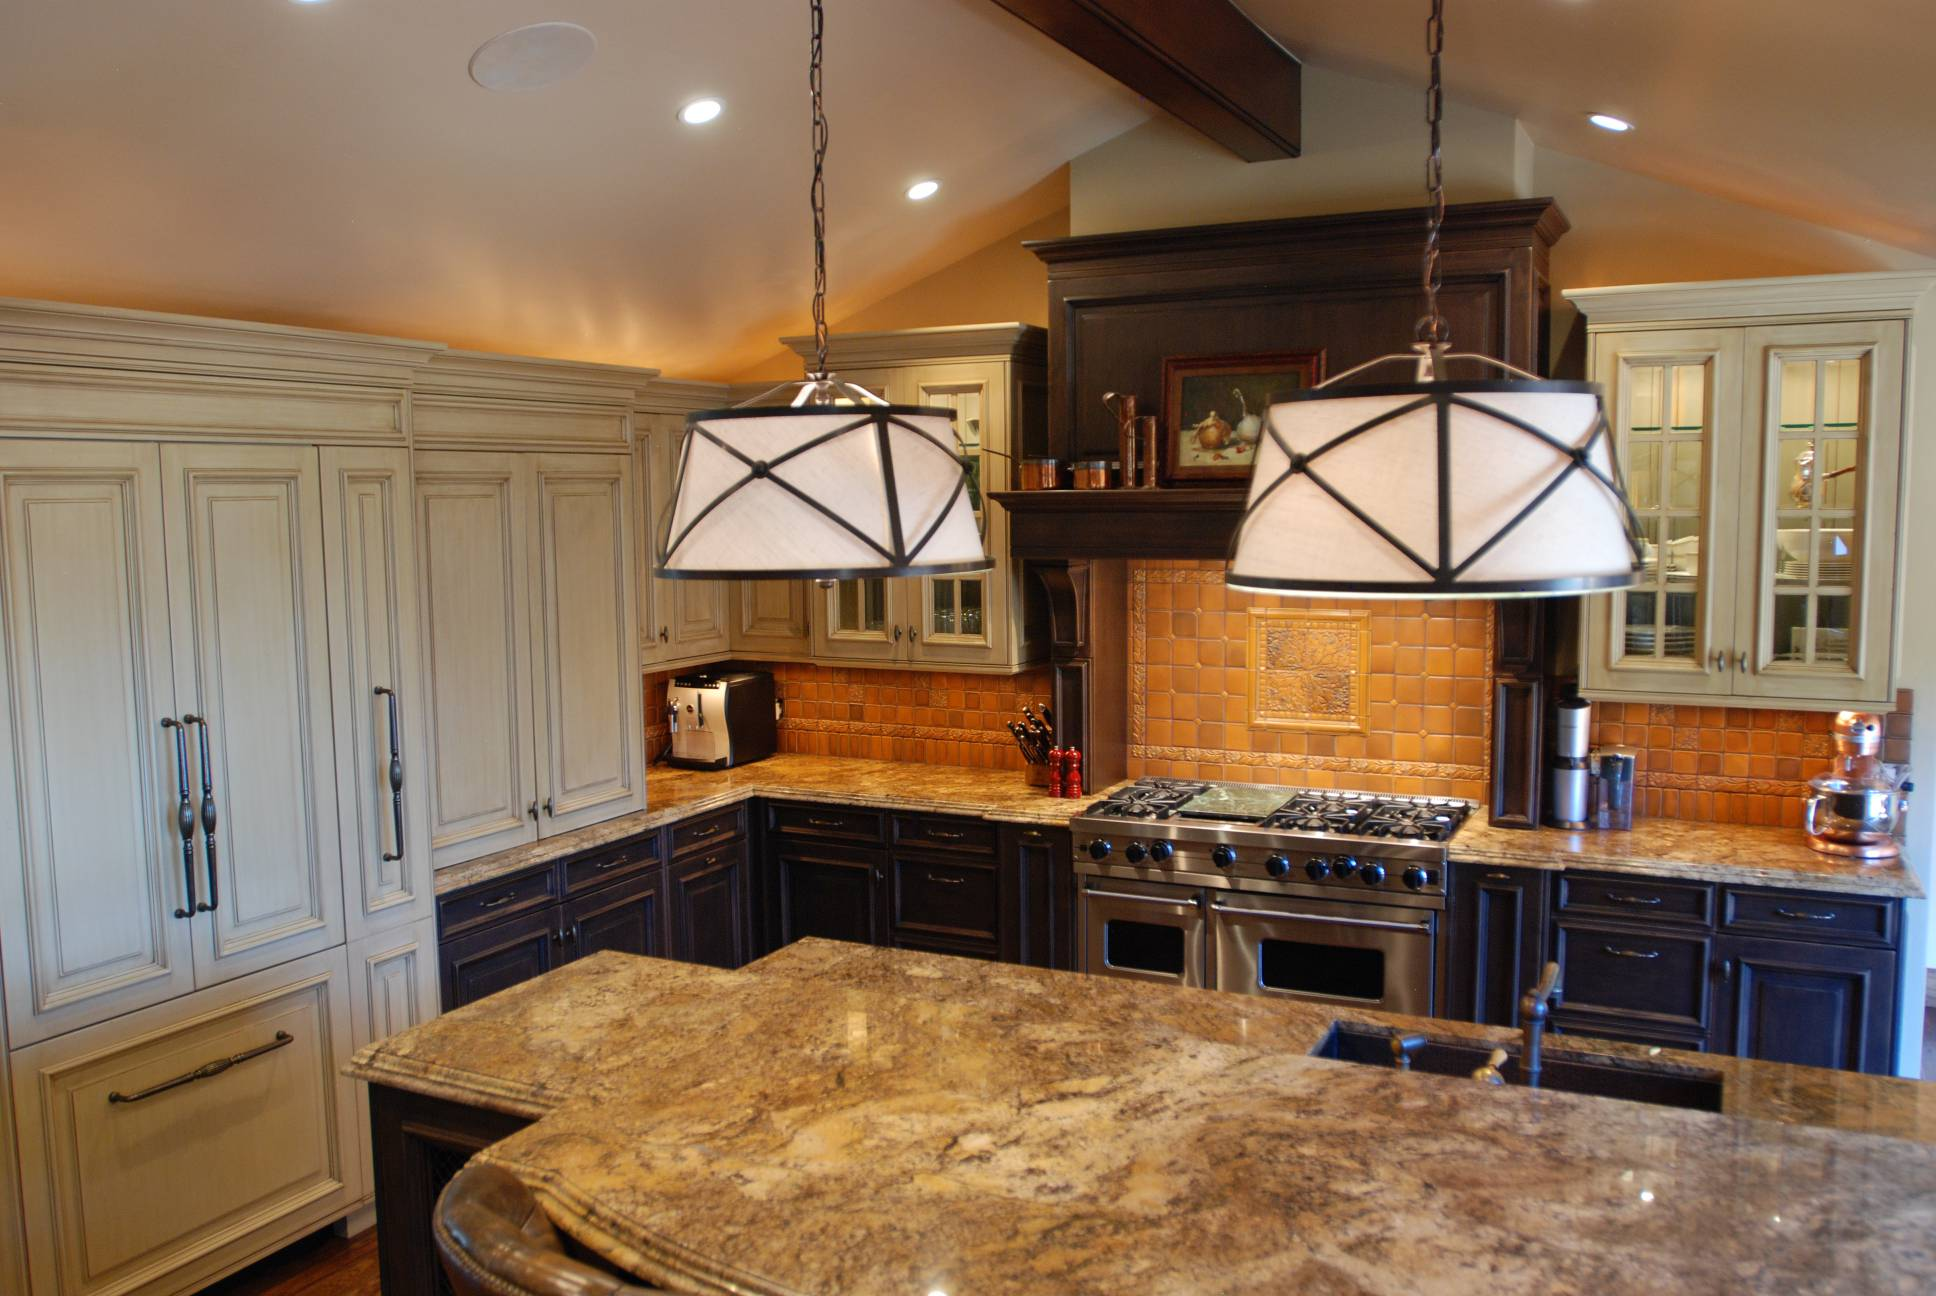 Gourmet kitche granite counters, best interior work design, architect work, Los Altos Hills